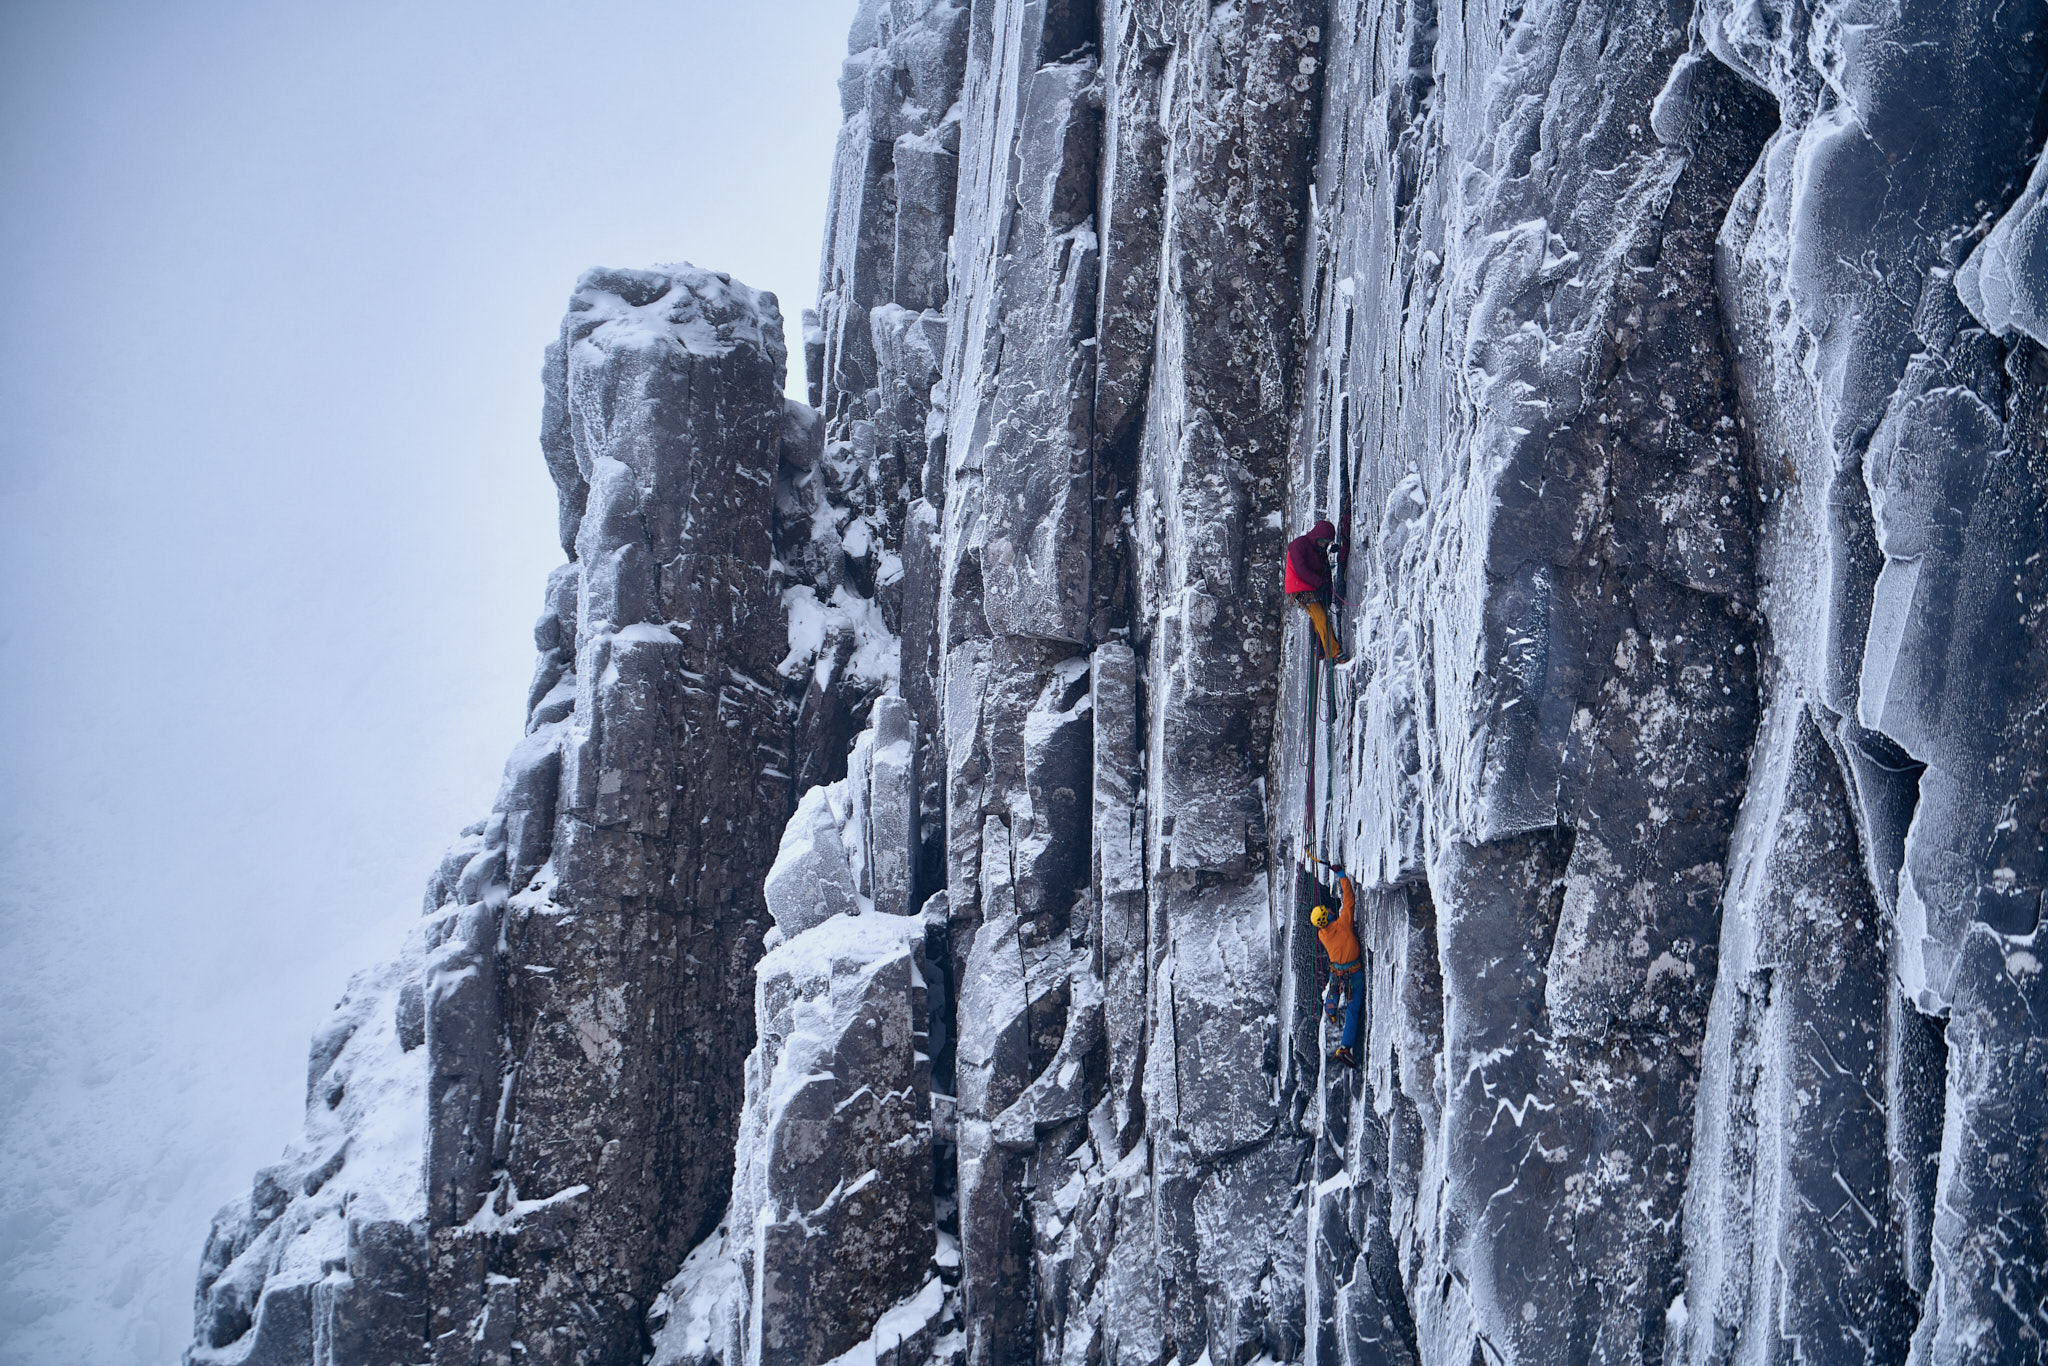 Guy follows up the crux